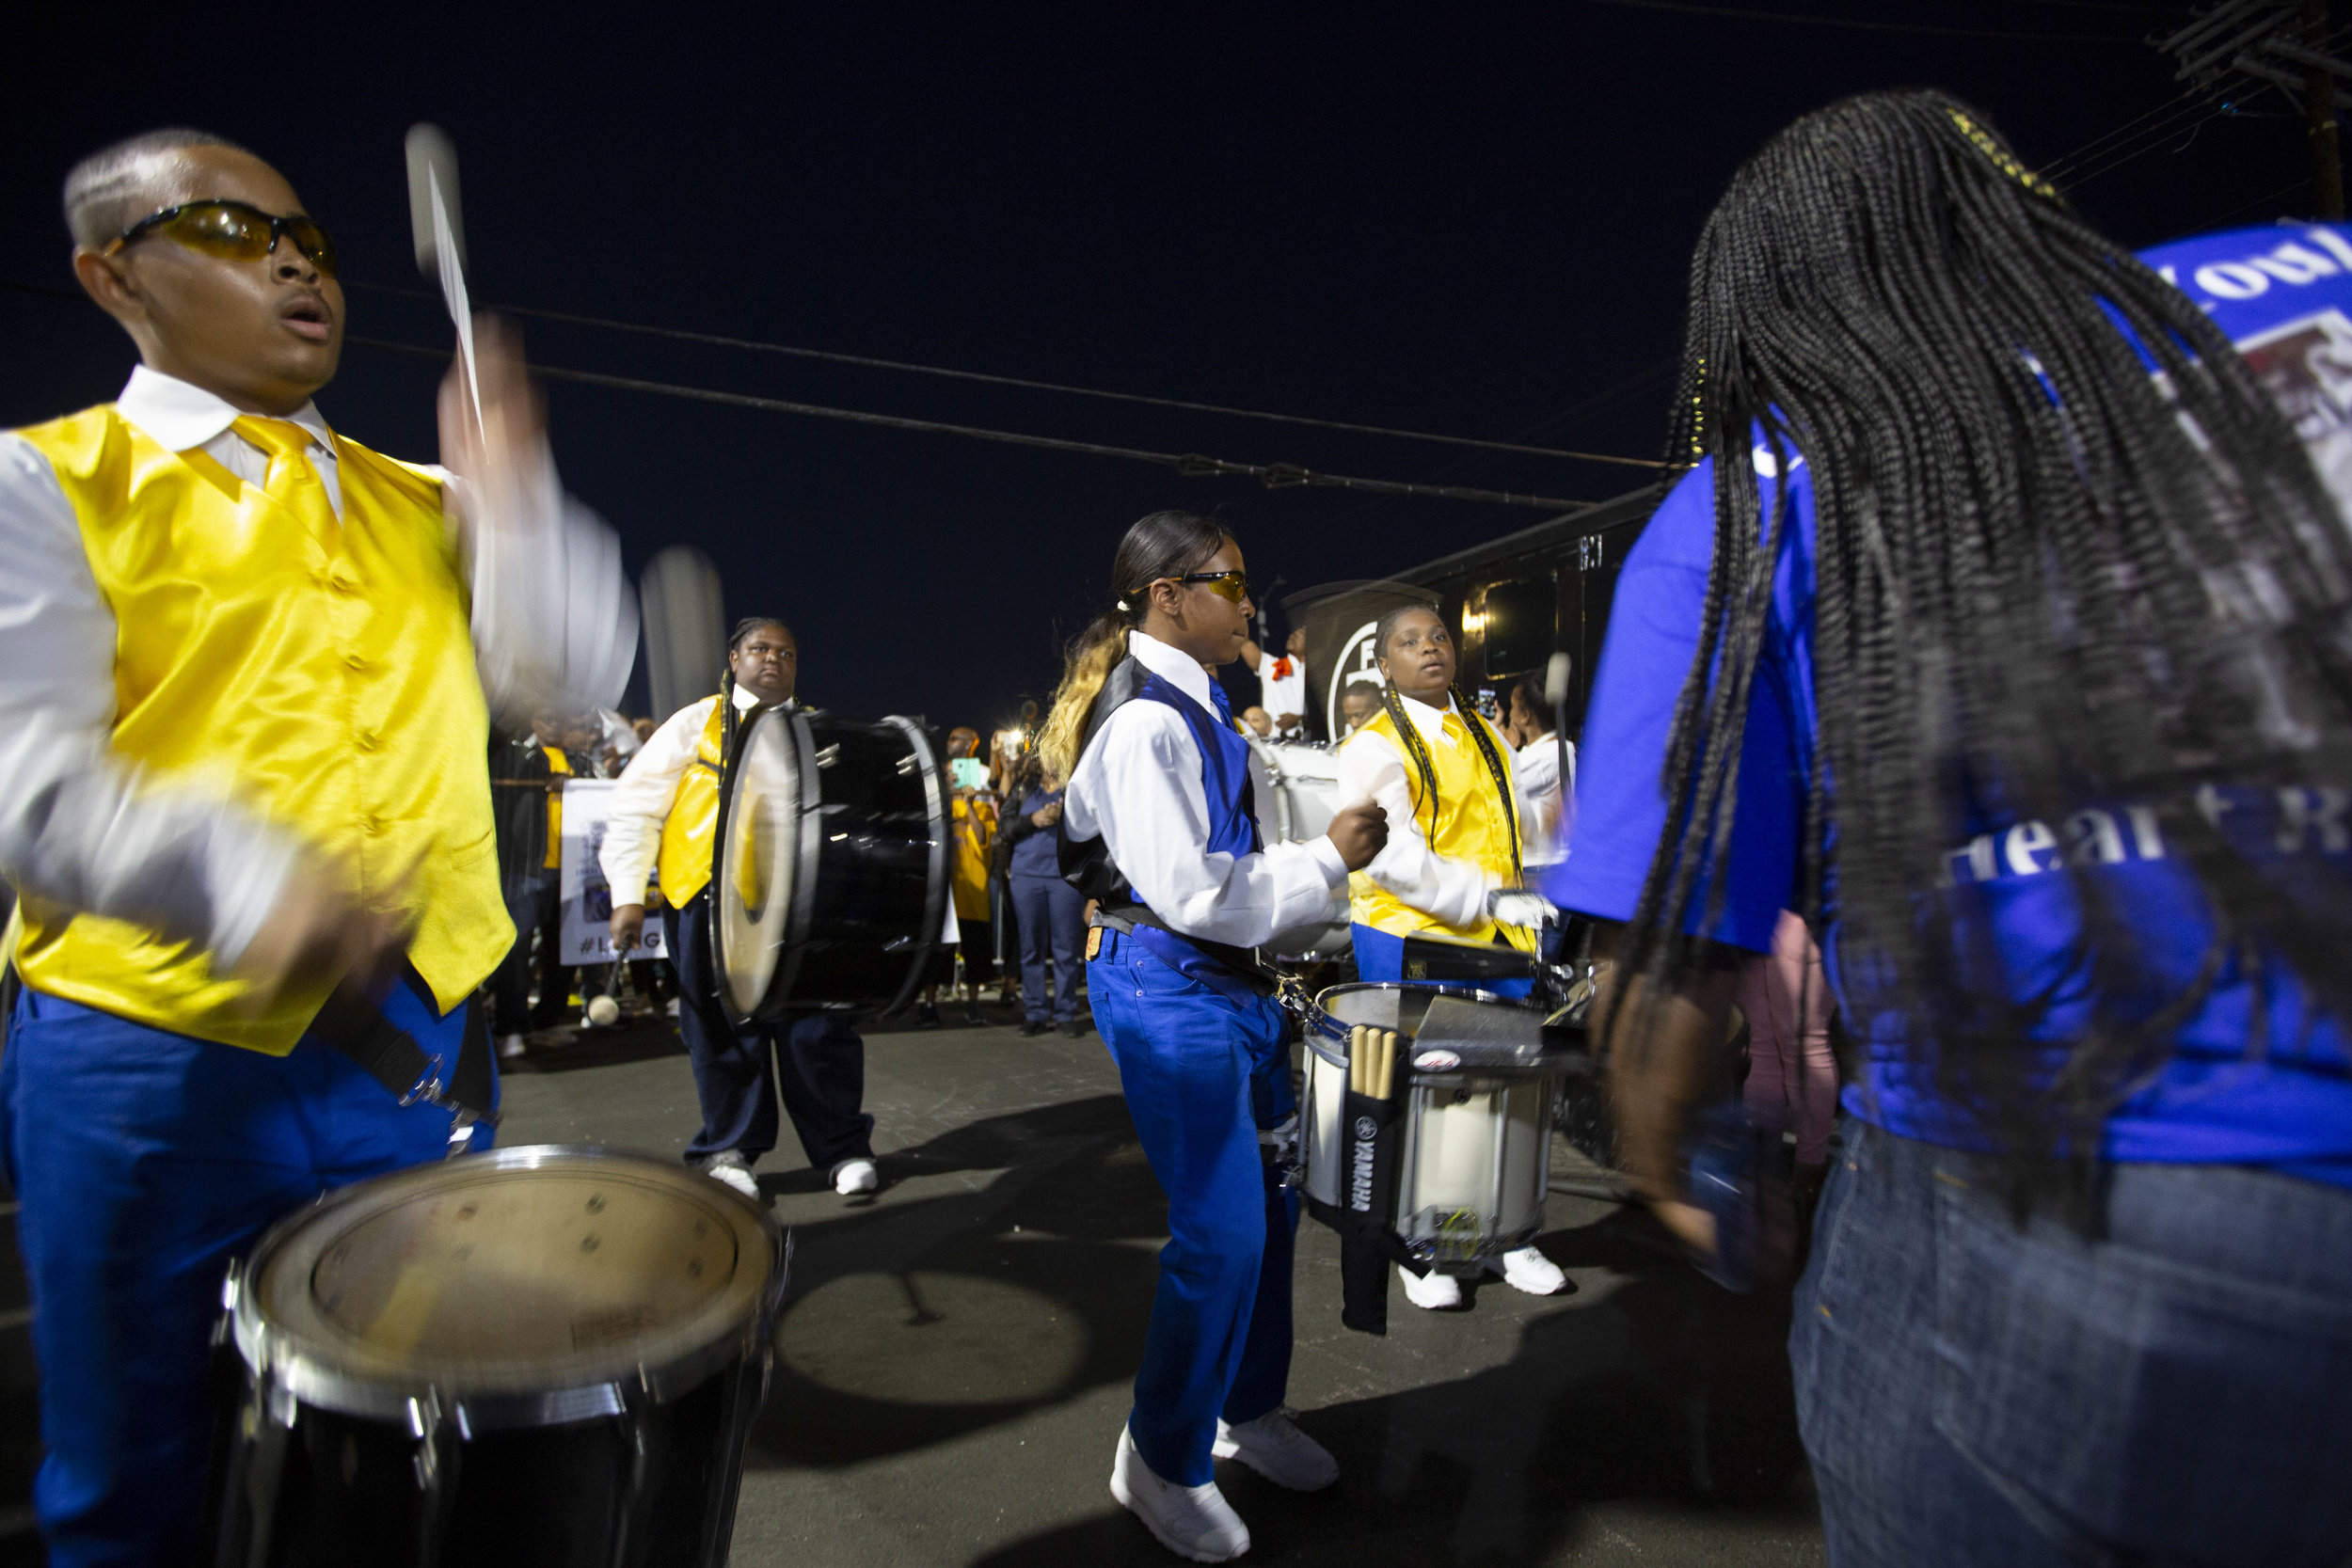 The Los Angeles Parmelettes Drumline marches up to the makeshift memorial for Nipsey Hussle and performs for fans paying their respects at The Marathon Clothing store on Slauson Avenue in Los Angeles, California on Wednesday, April 6, 2019. The 33-year-old rapper was murdered on March 31 in front of The Marathon Clothing store which he owned. (Jose Lopez)